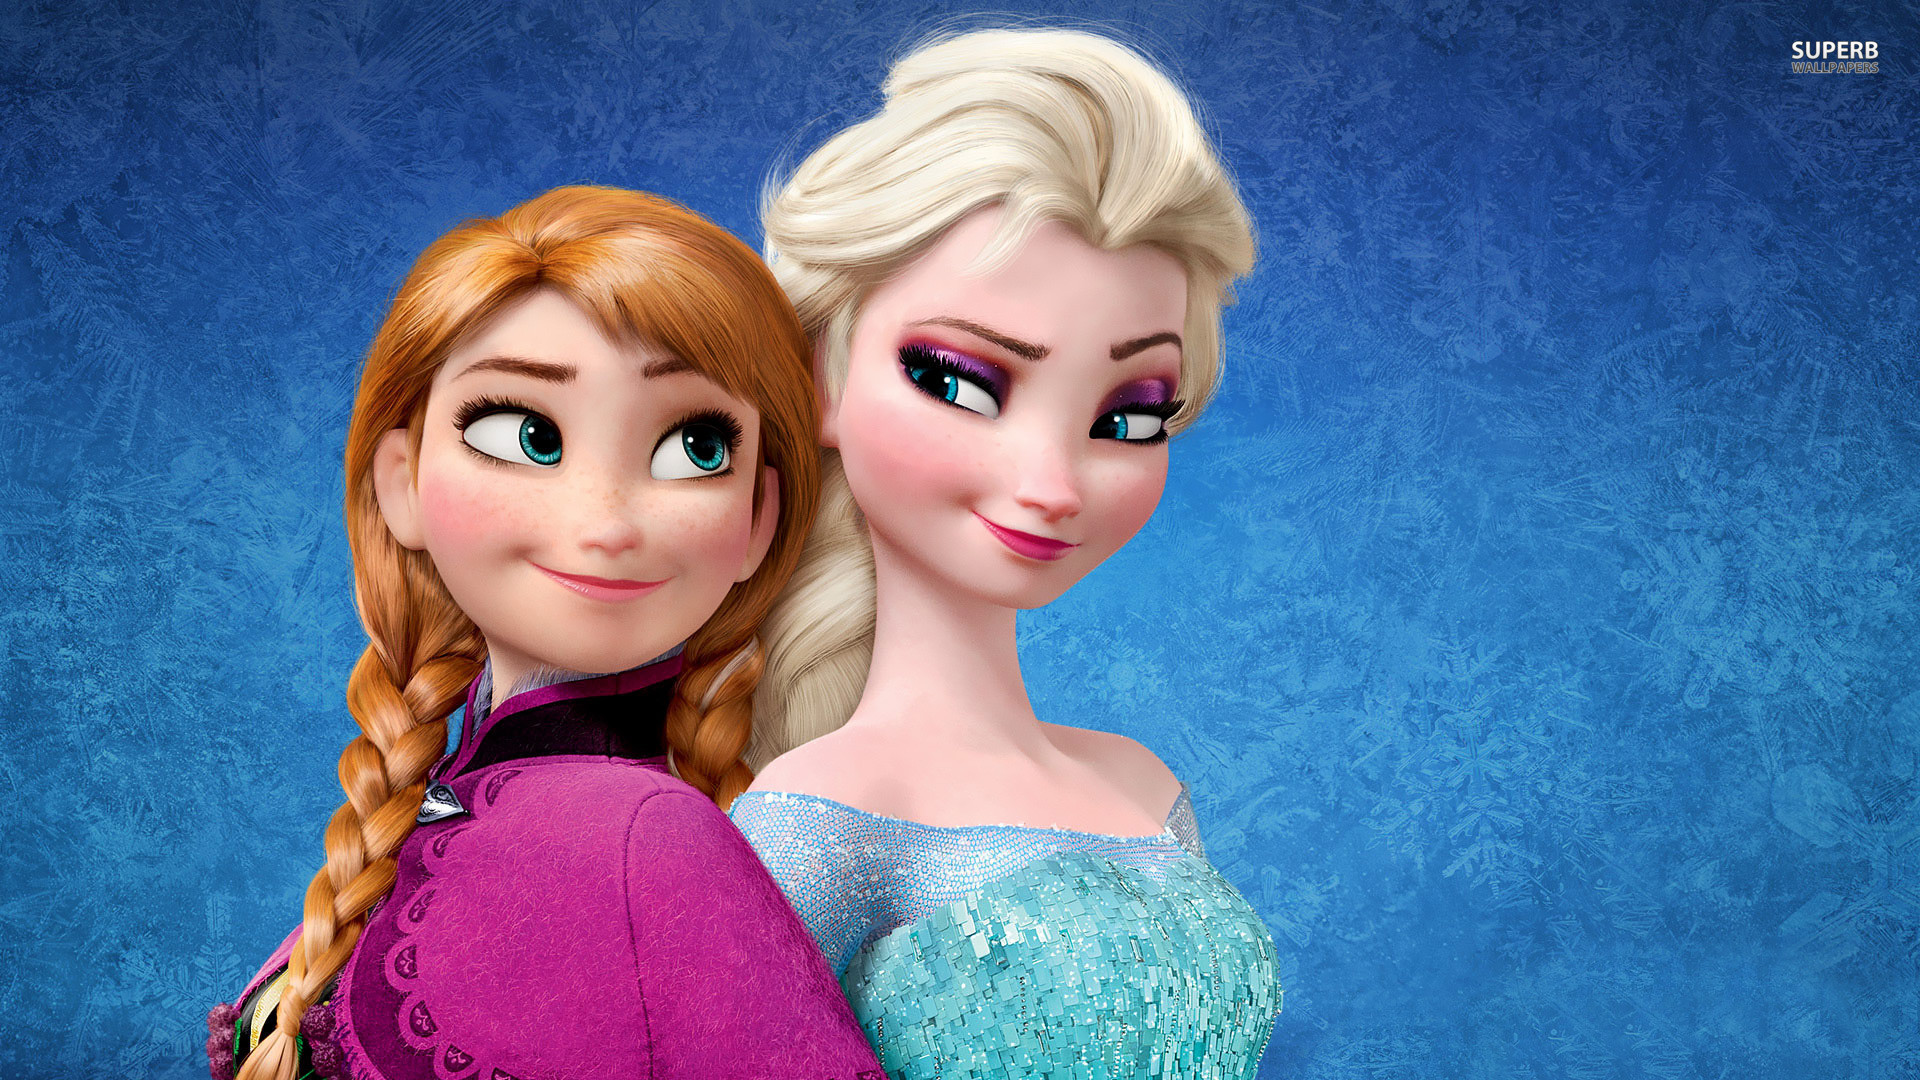 1920x1080 Frozen images Elsa and Anna Wallpapers HD wallpaper and background